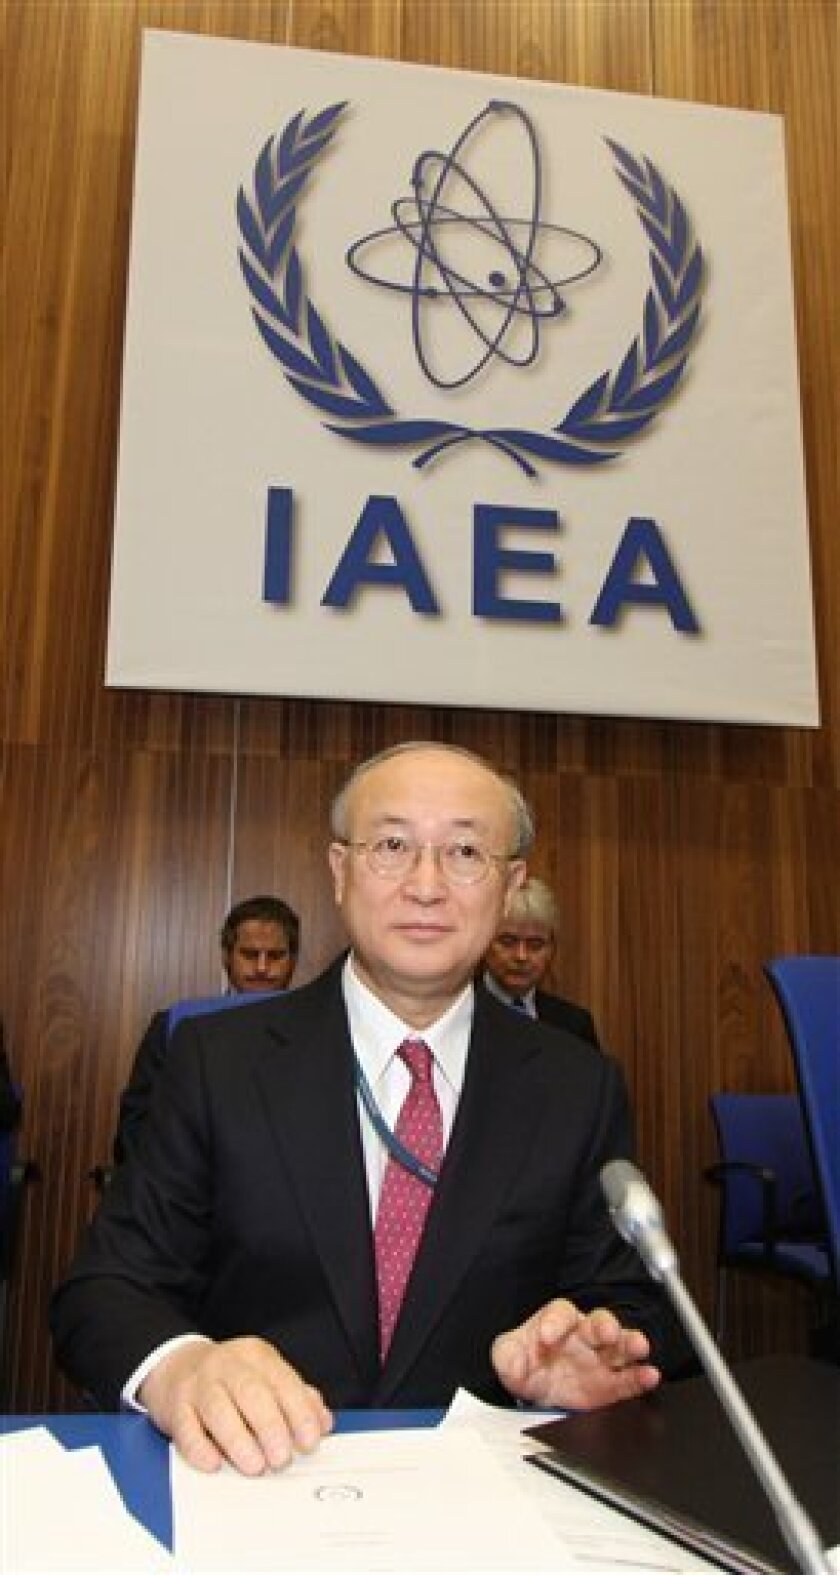 Director General of the International Atomic Energy Agency, IAEA, Yukiya Amano from Japan waits for the start of IAEA's board of governors meeting at Vienna's International Center, on Monday, March 1, 2010. (AP Photo/Ronald Zak)